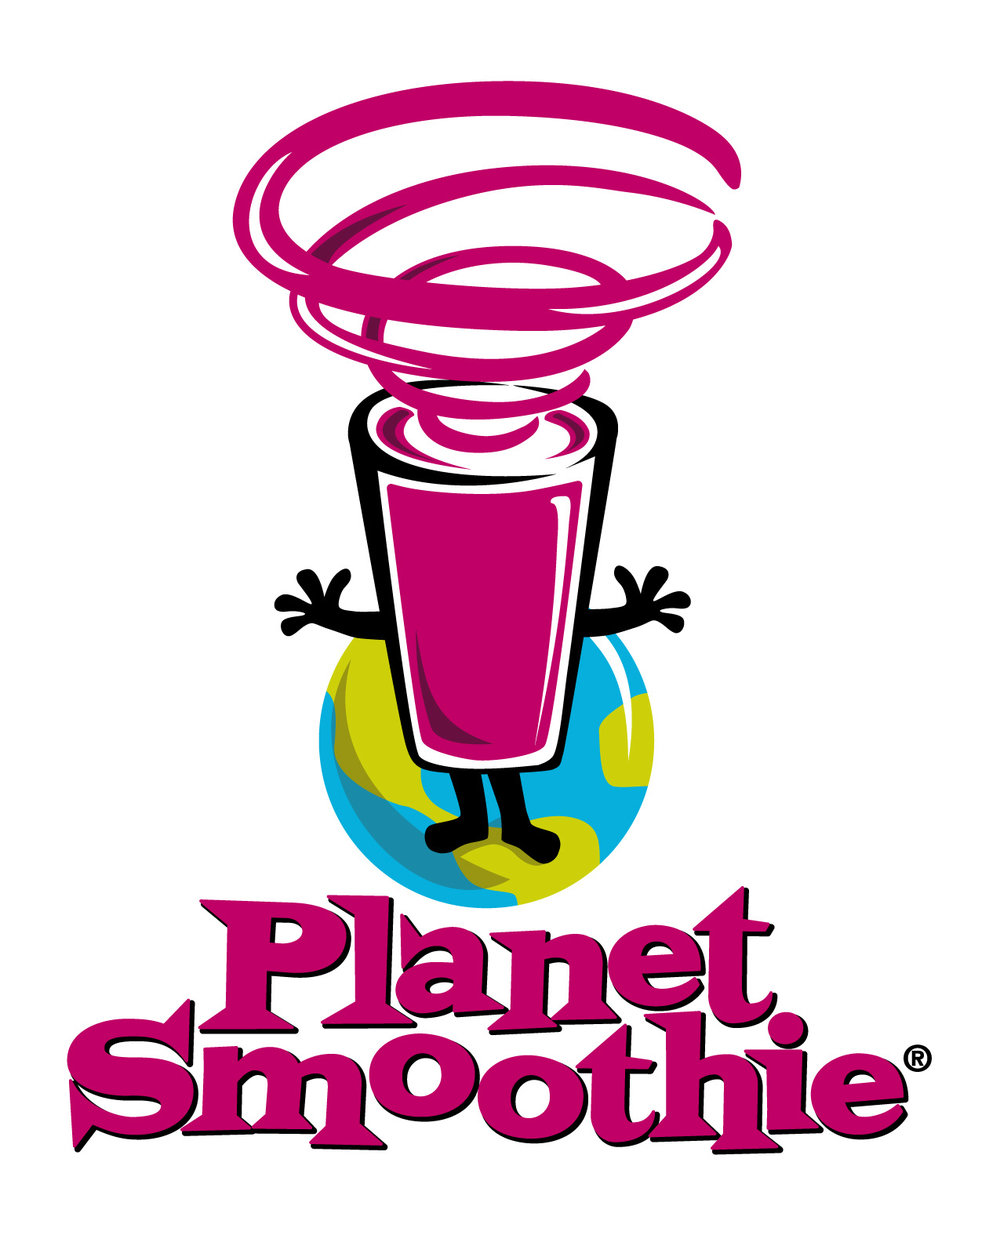 planet-smoothie-logo.jpg